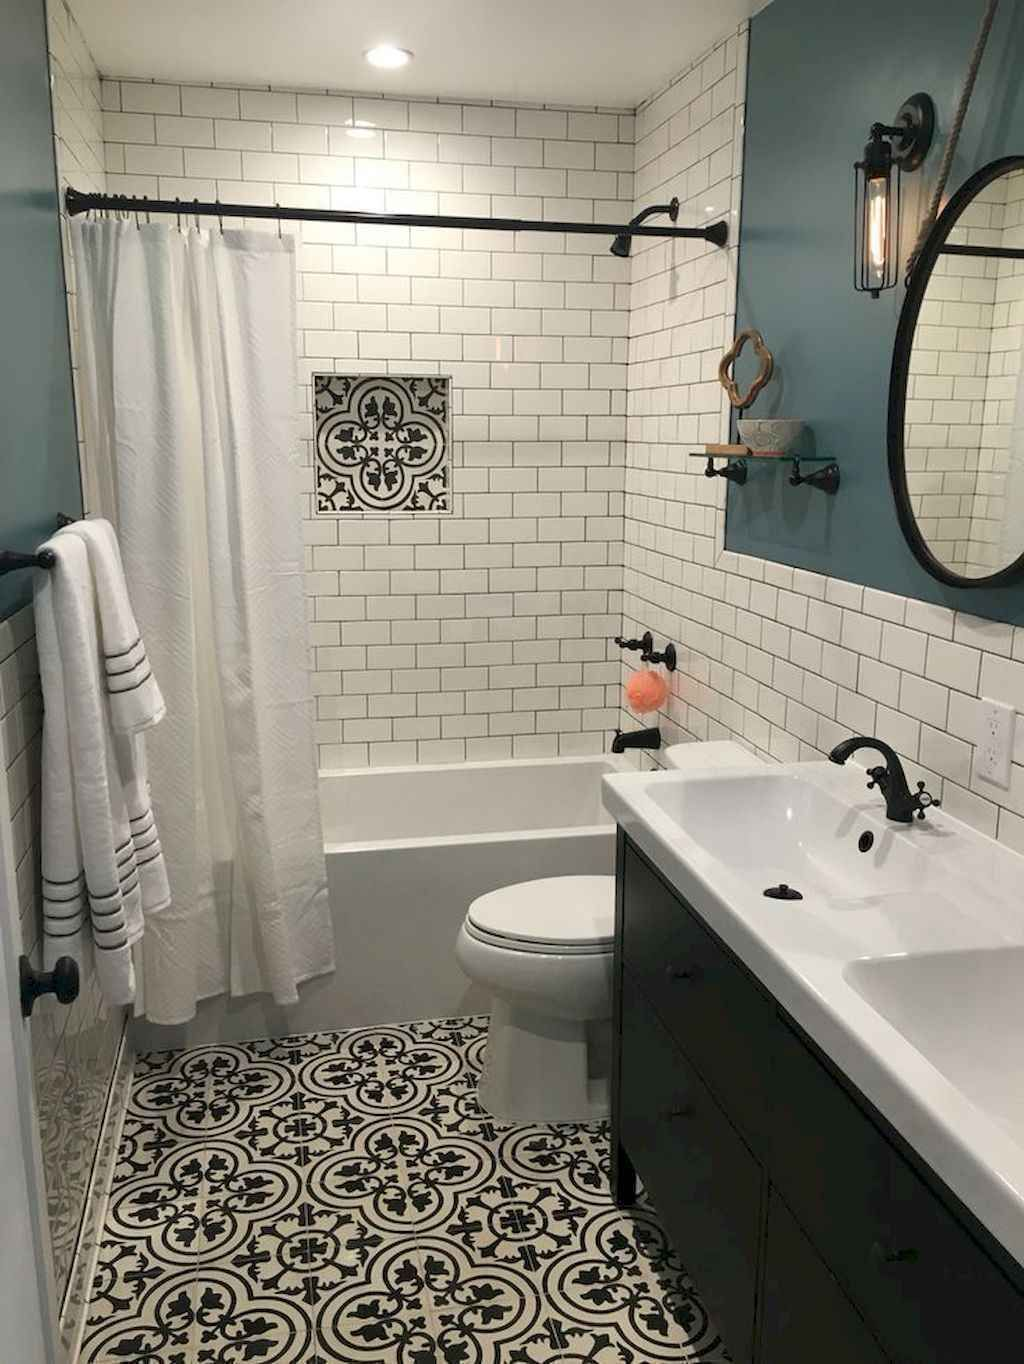 Small Master Bathroom Remodel Ideas on A Budget - Bathrooms Remodeling